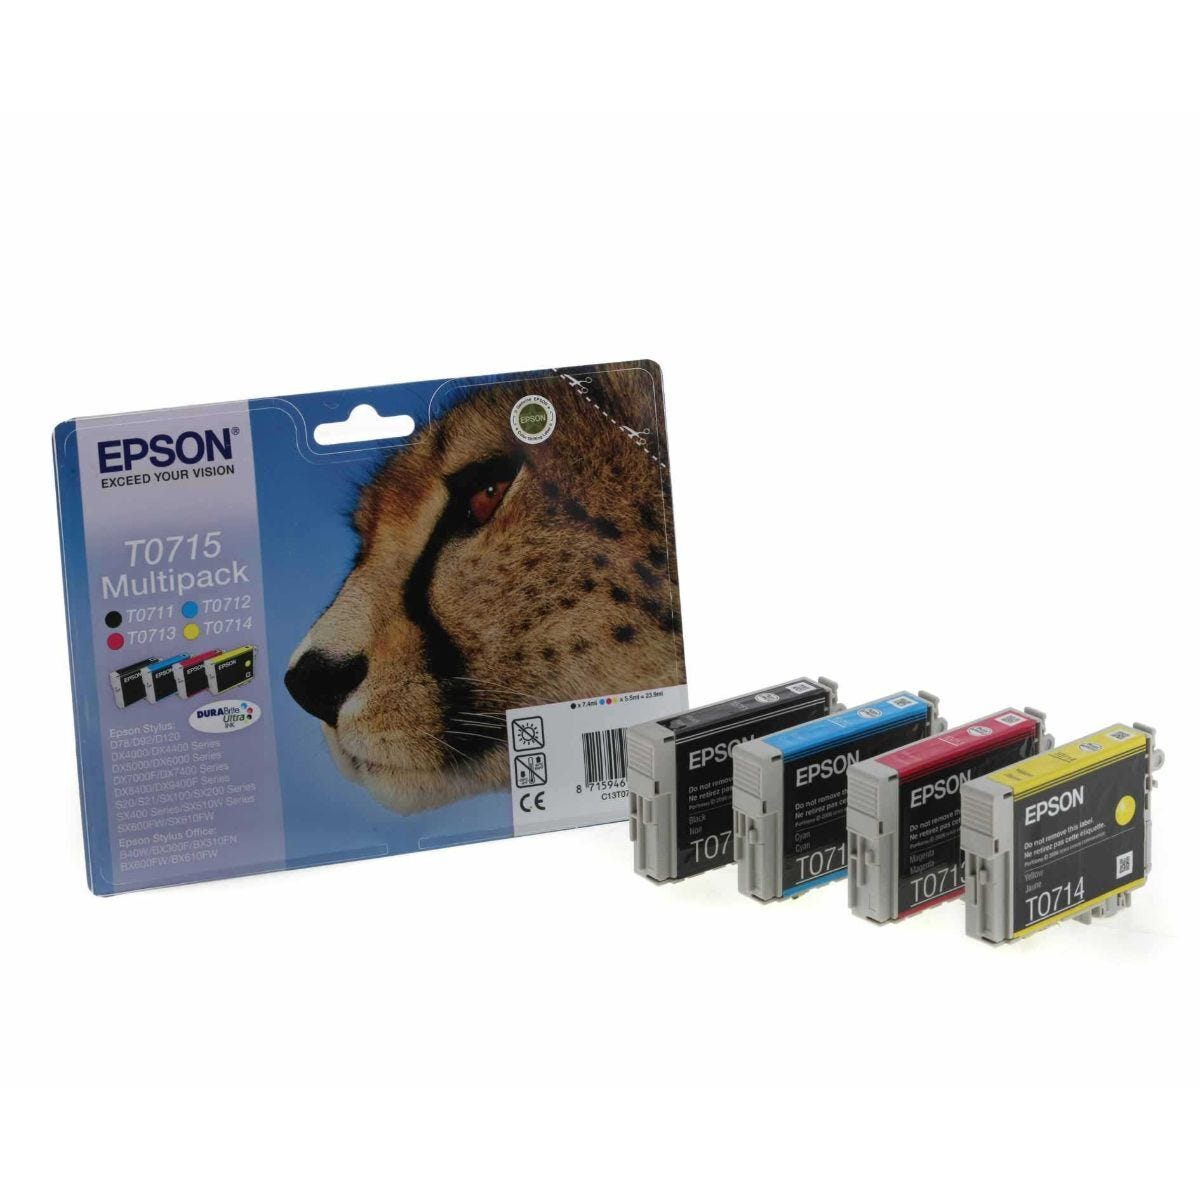 Epson T0715 Ink Cartridge Pack of 4